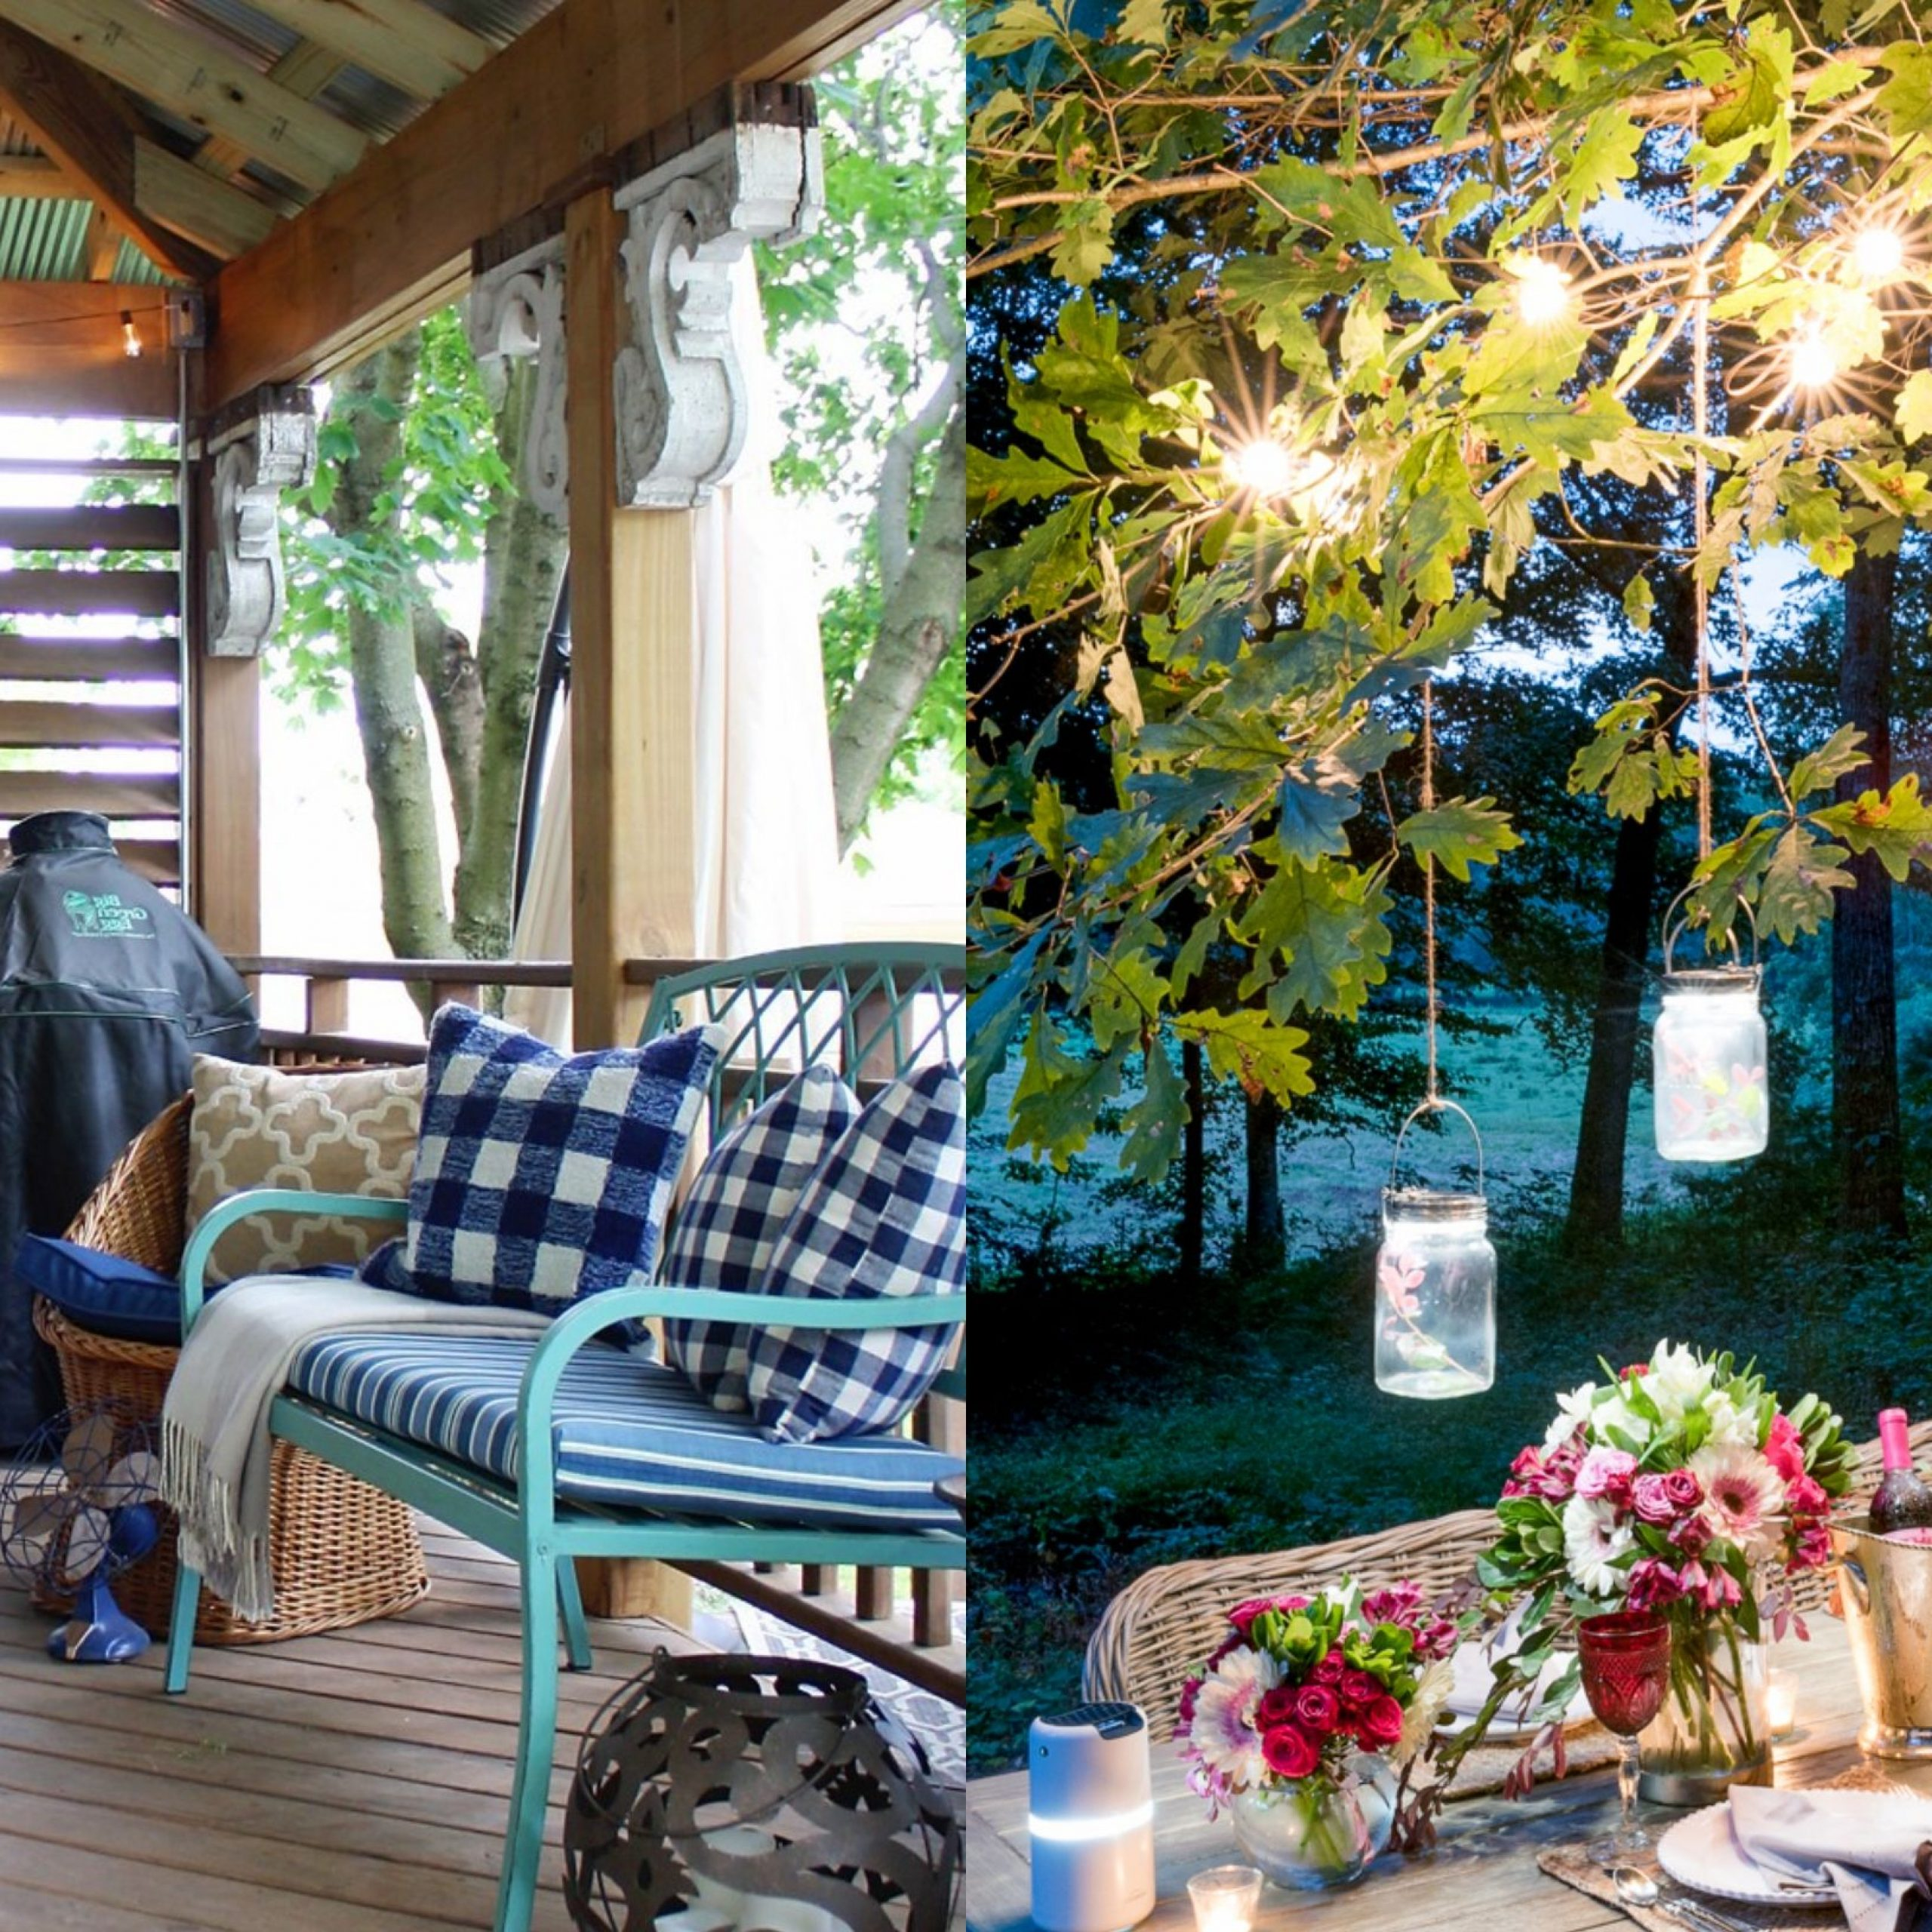 Most Popular Lamp Outdoor Porch Swings Throughout 25 Backyard Lighting Ideas – How To Hang Outdoor String Lights (View 27 of 30)